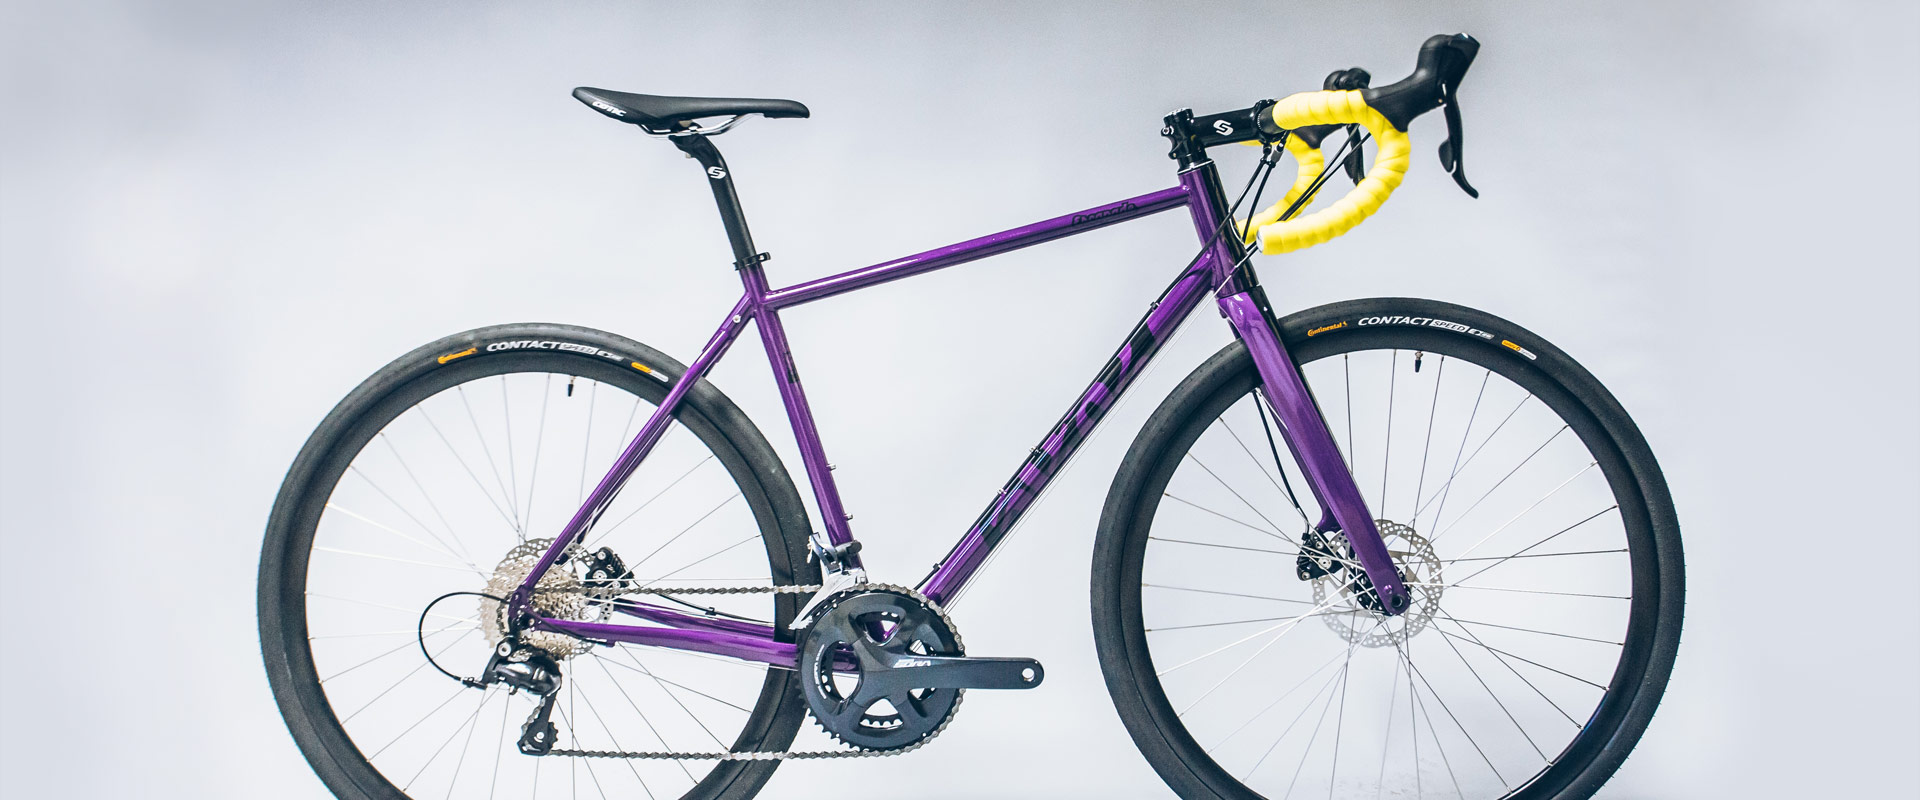 the Product of COTIC cycles : the updated Escapade, your